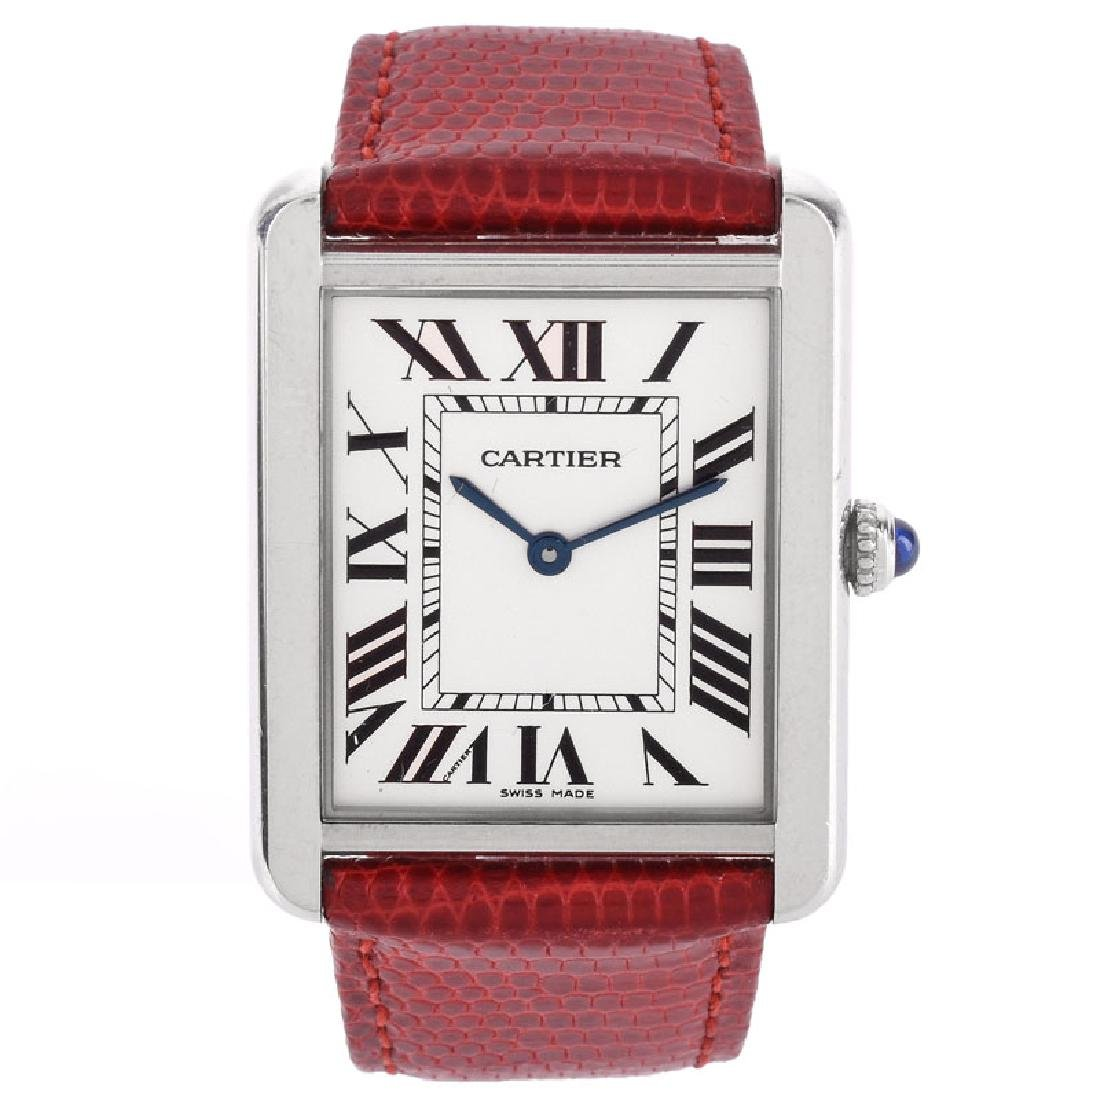 Two (2) Lady's Cartier Watches - 10